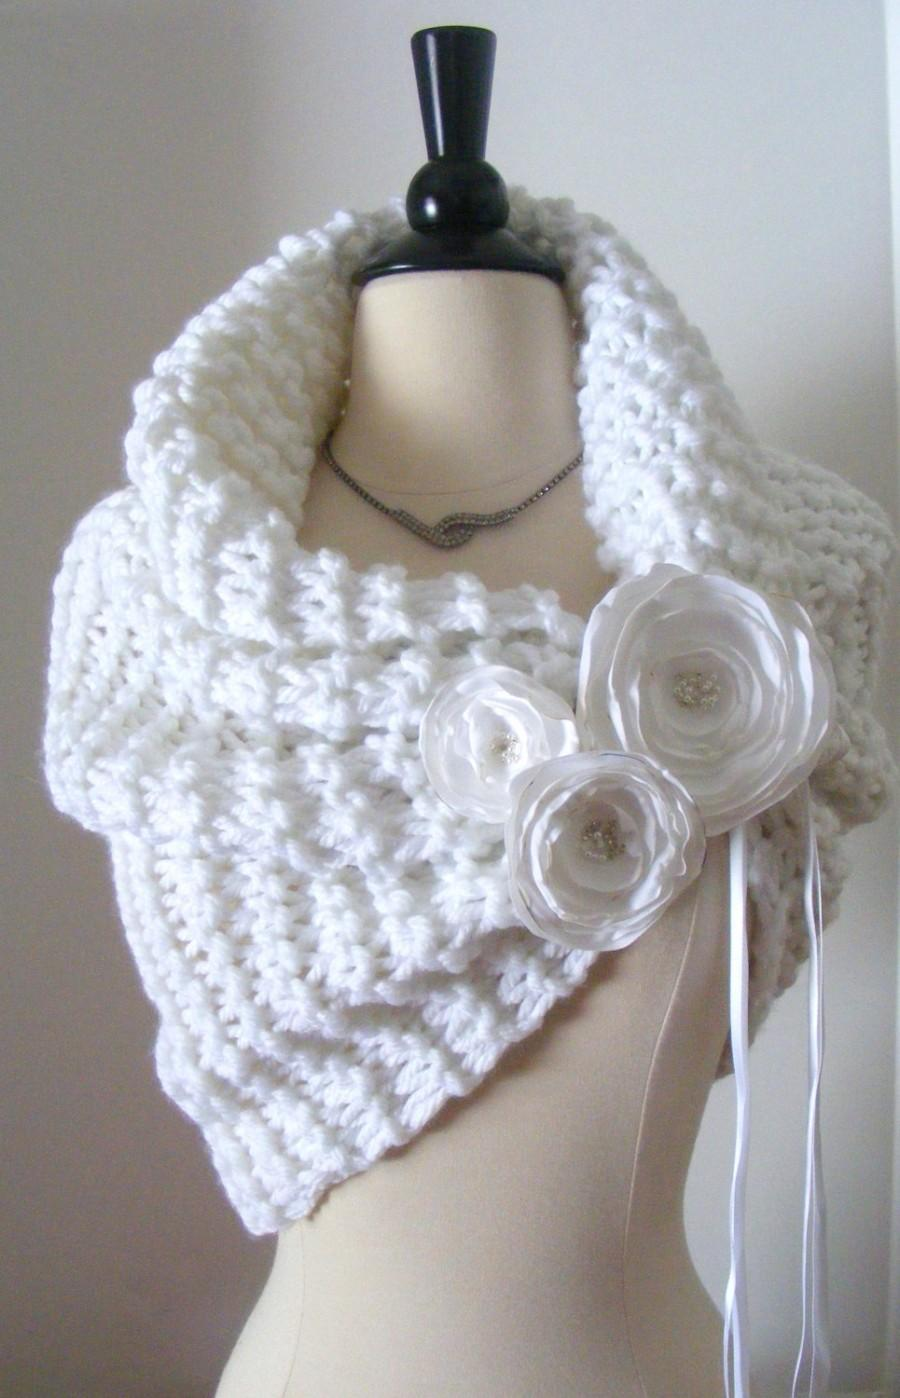 Mariage - White Wedding Shawl/Wedding Shawl/Winter Wedding/Bridal Shrug/White Shawl/Wedding Shrug/White Wedding/Spring Wedding/Wedding Cape/Bolero